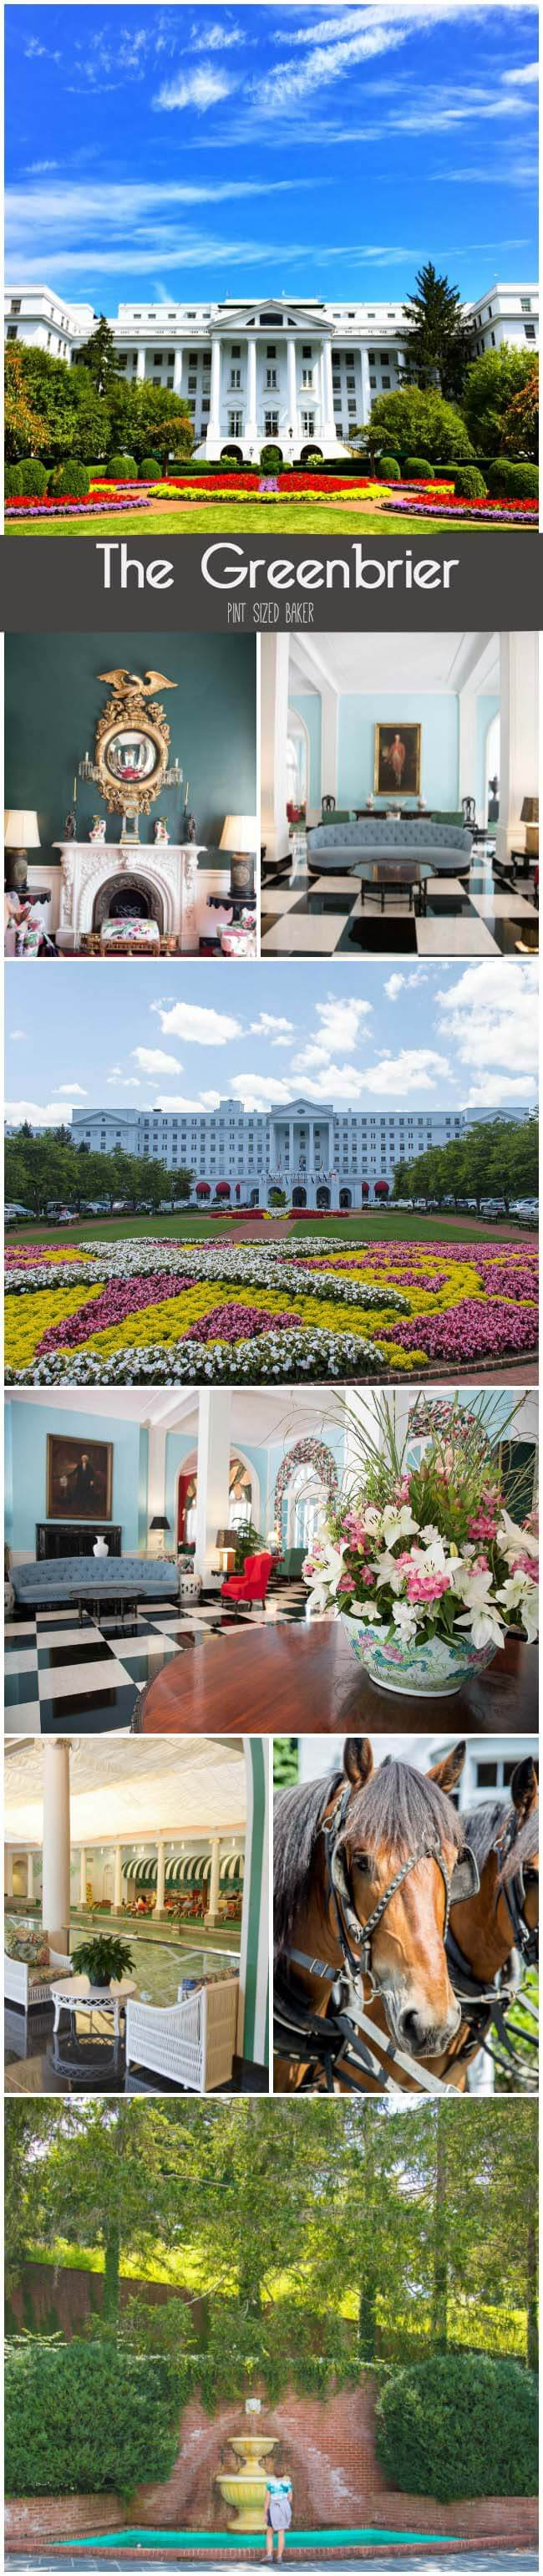 The Greenbrier Resort has been a premier destination for nearly 250 years! Home to the Greenbrier Classic Golf Tournament. If you're looking to relax in the lap of luxury, you've found the place!